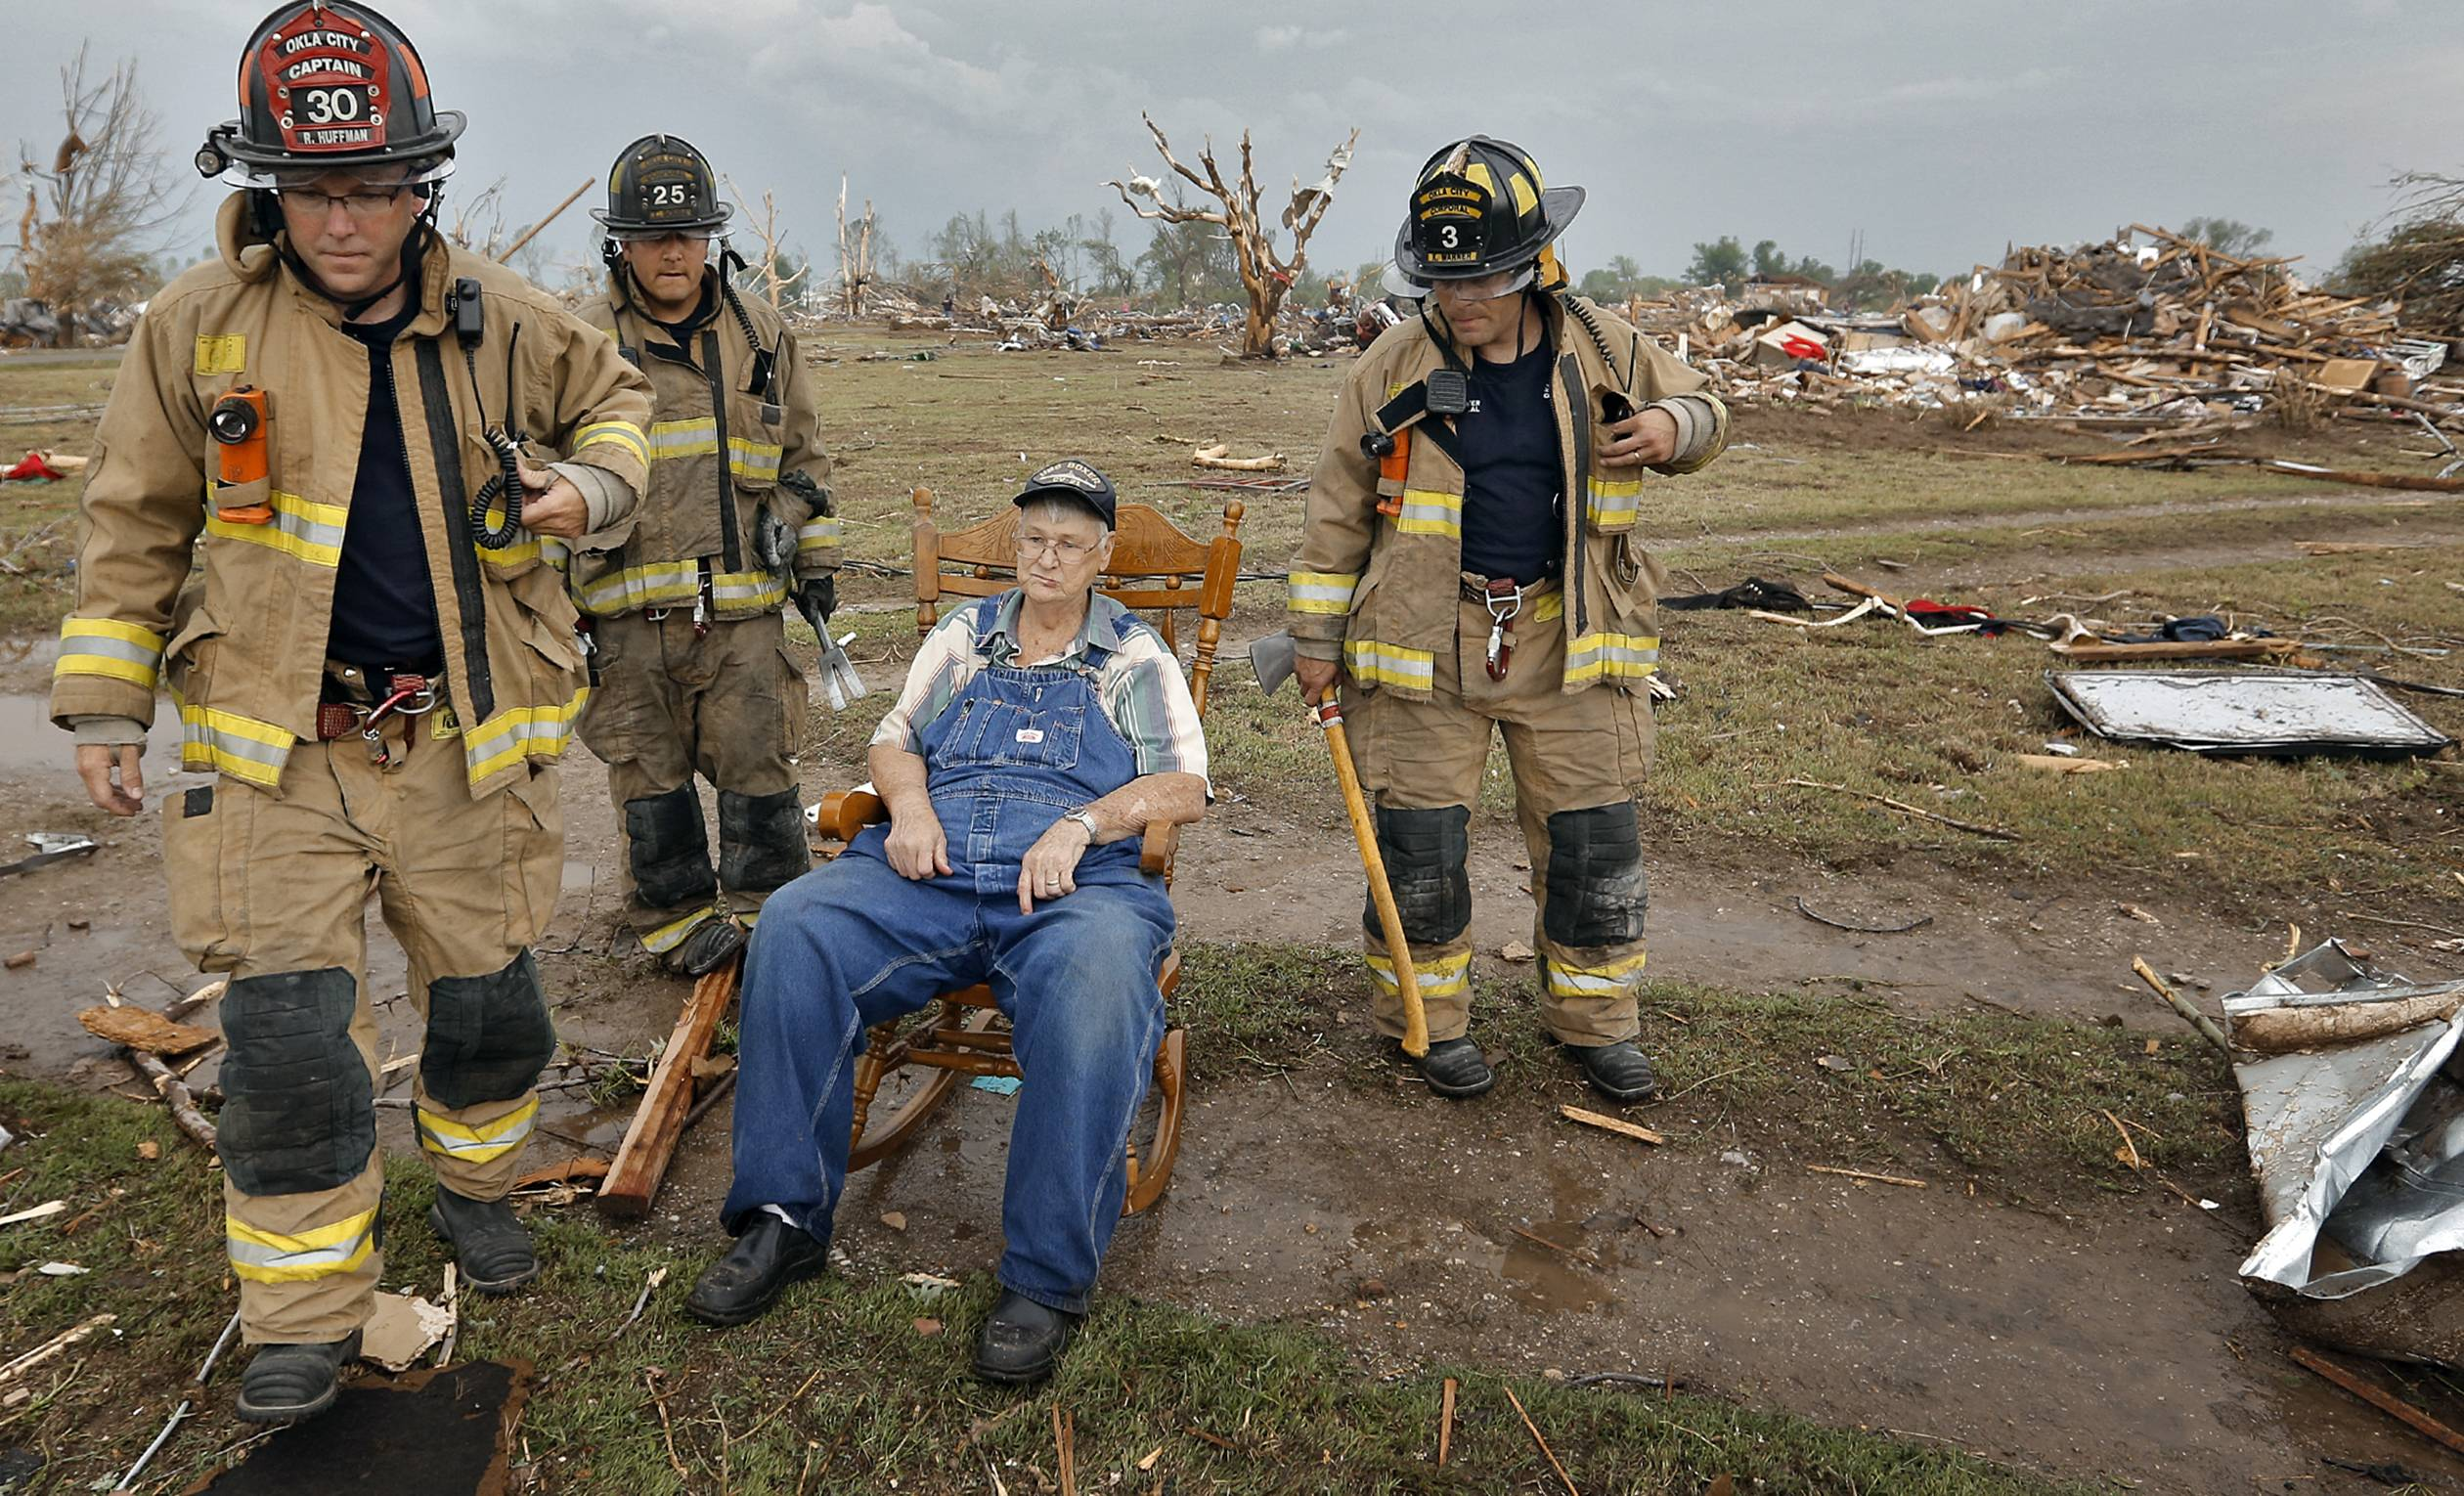 Oklahoma City firefighters check on the status of Gene Tripp as he sits in his rocking chair where his home once stood after being destroyed by a tornado that hit the area, Monday, May 20, 2013 in Oklahoma City, Okla.